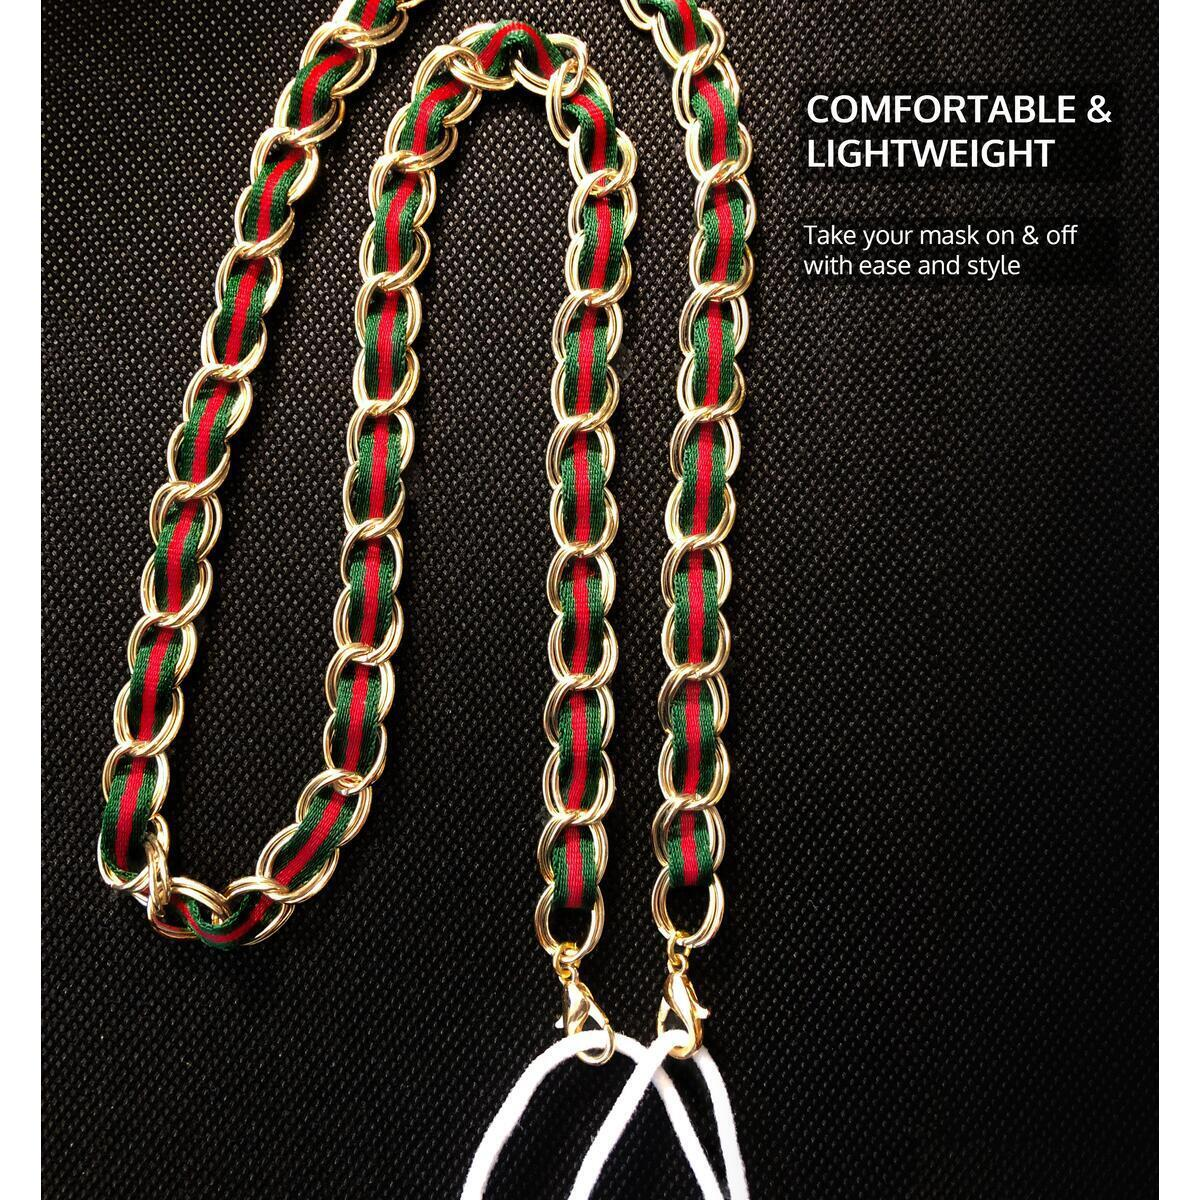 Mask Chain Necklace for Women (Green/red & Gold)